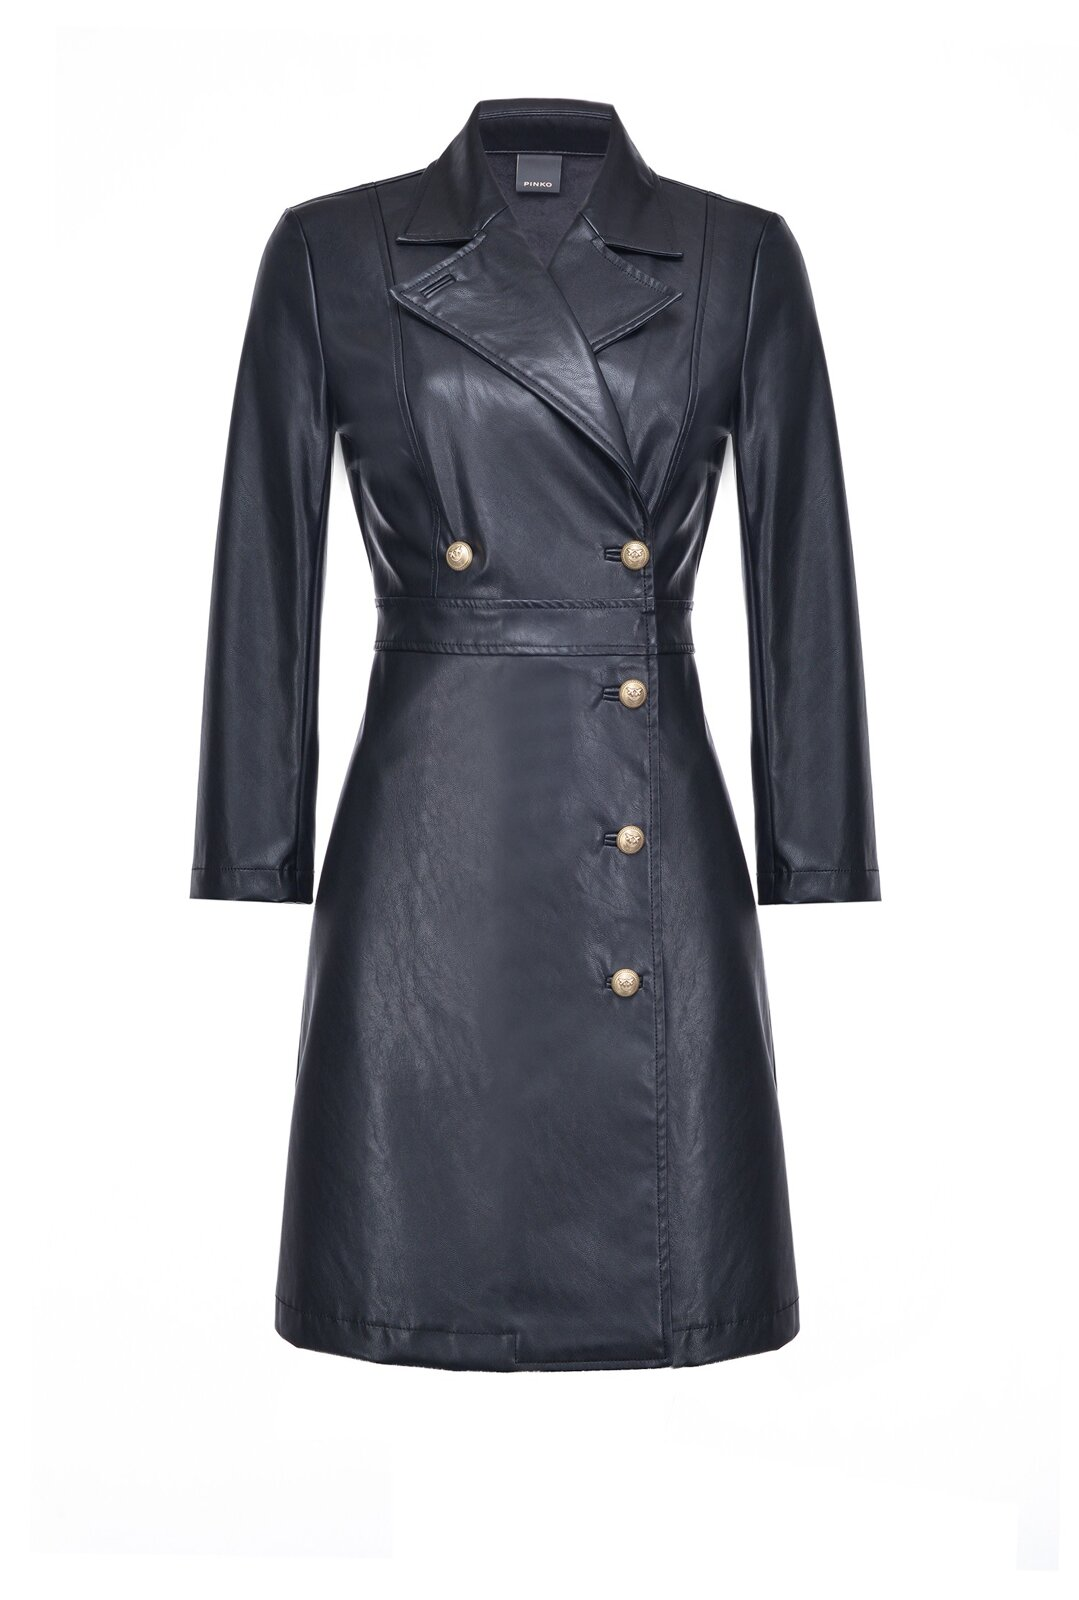 Double Breasted Leather Effect Dress With Buttons - Pinko